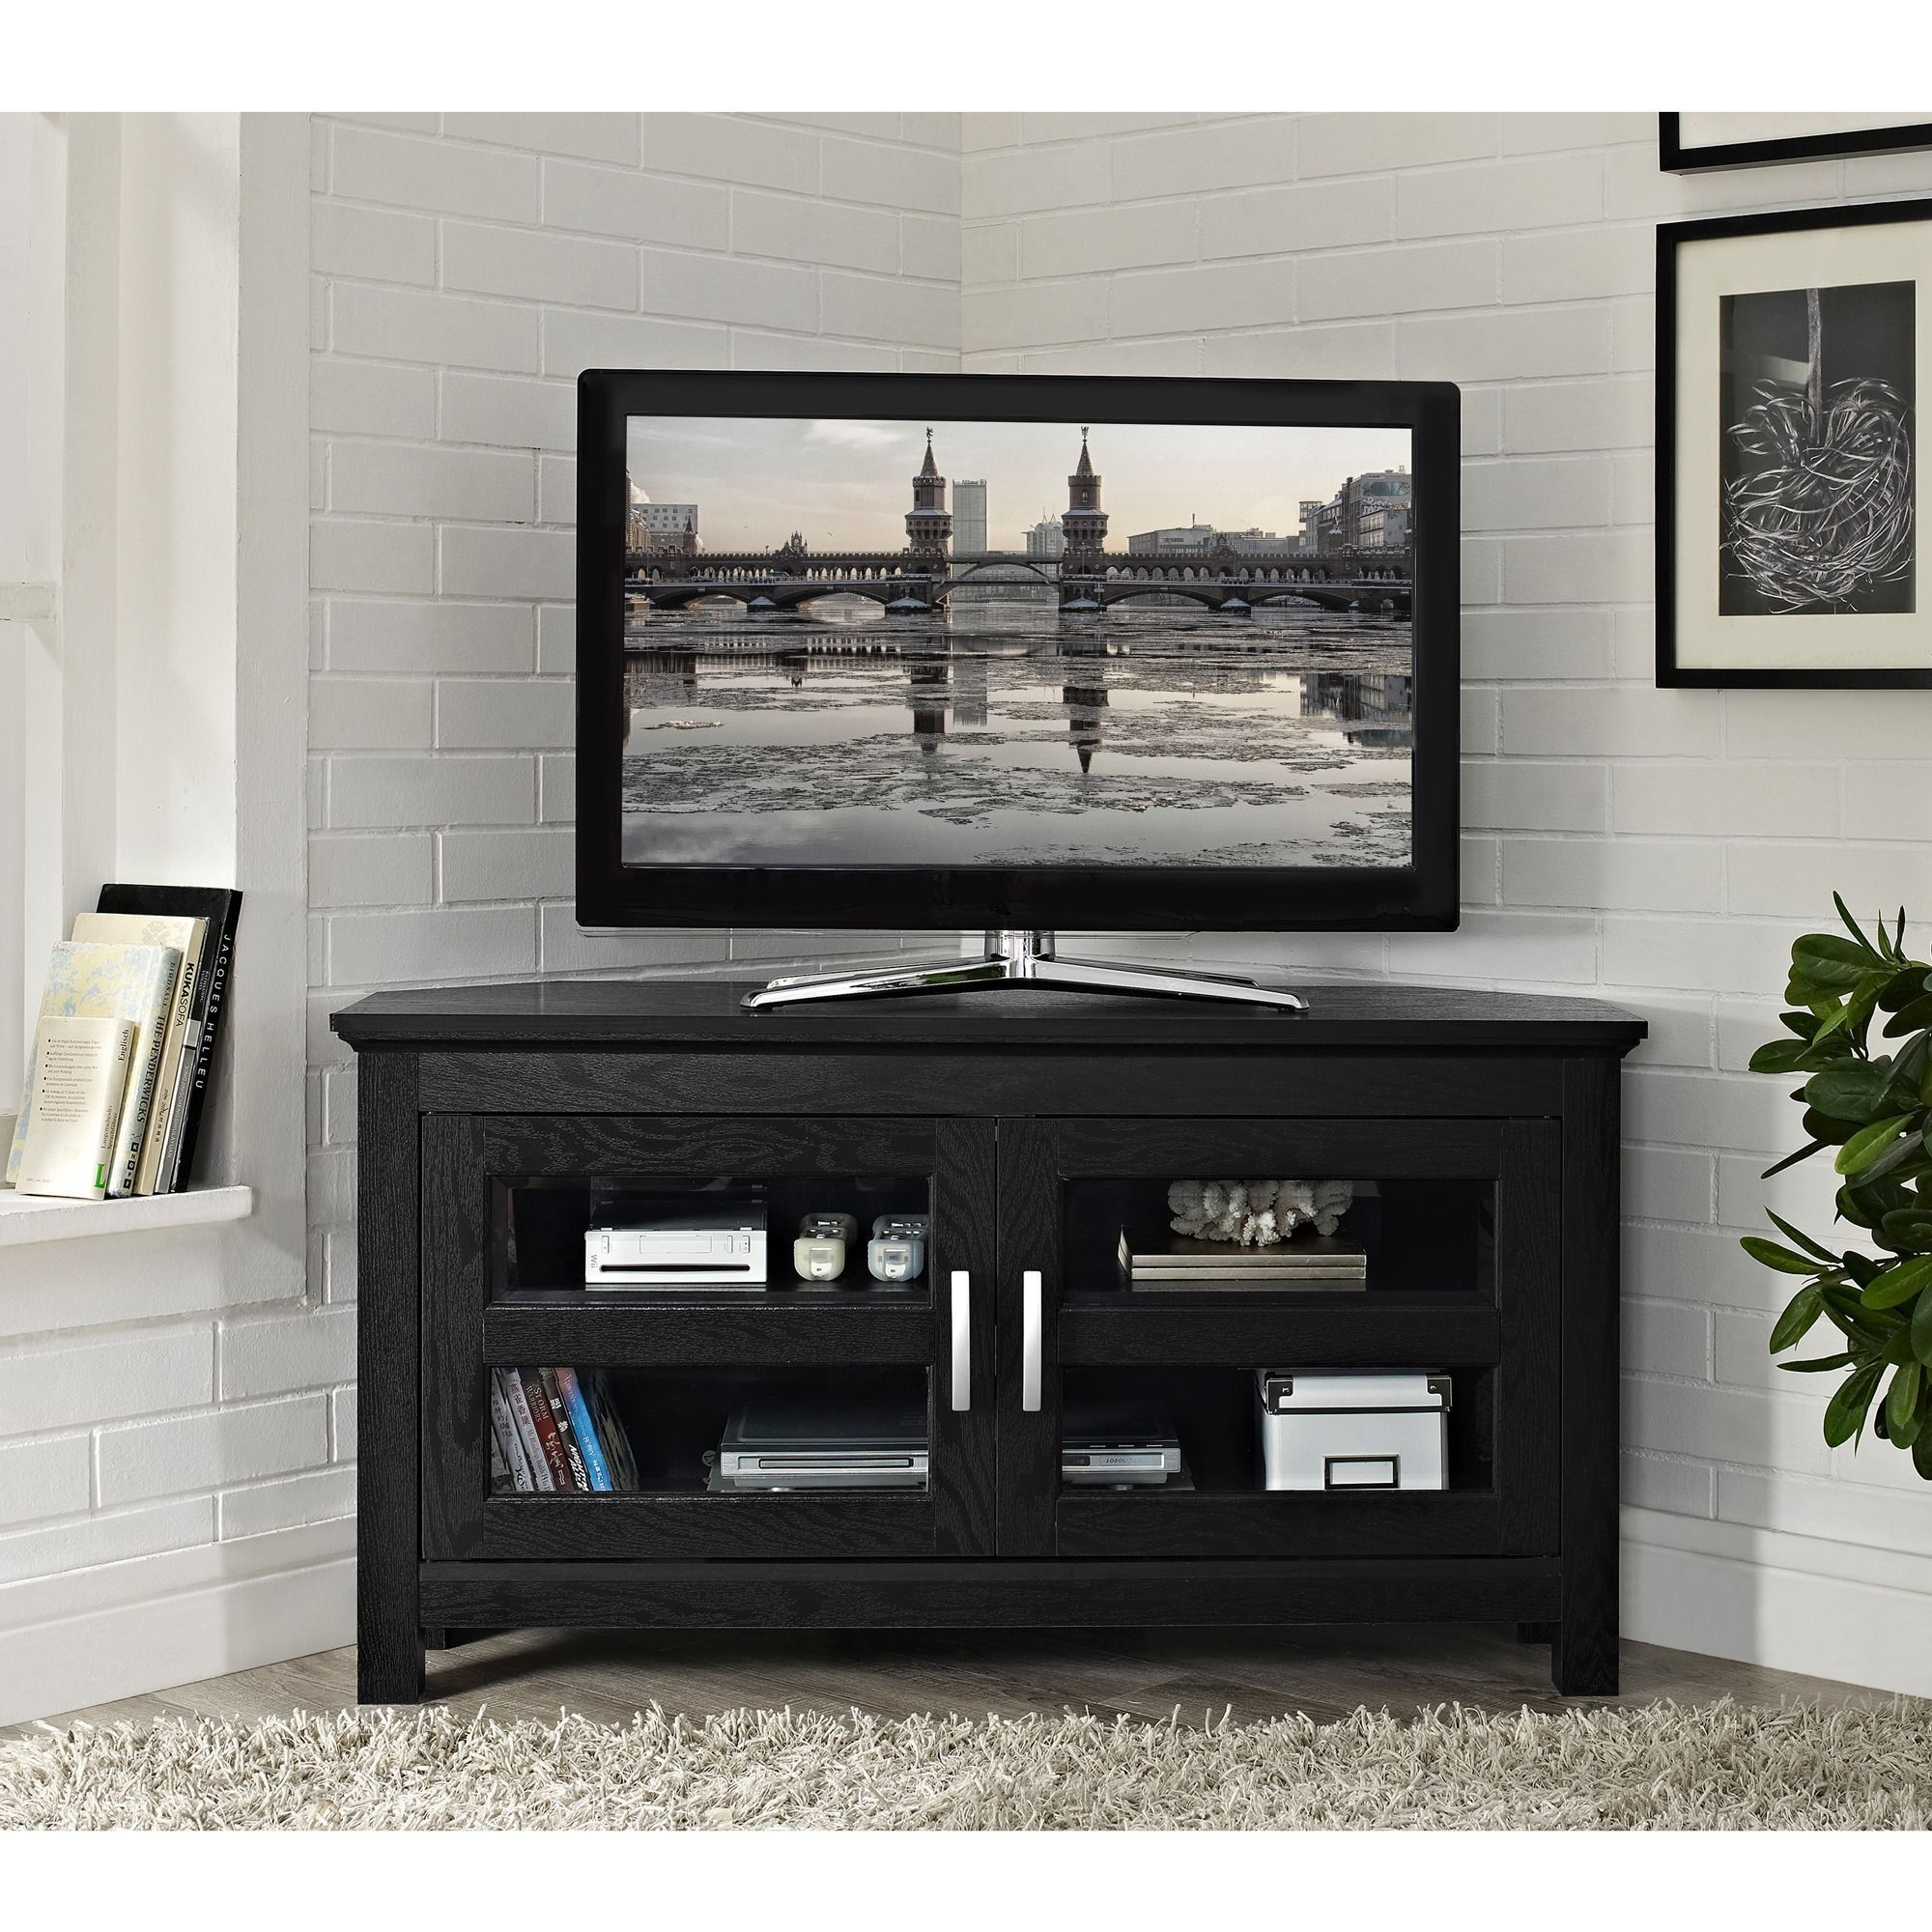 Overstock Com Online Shopping Bedding Furniture Electronics Jewelry Clothing More Black Corner Tv Stand Corner Tv Stand Corner Tv Stands